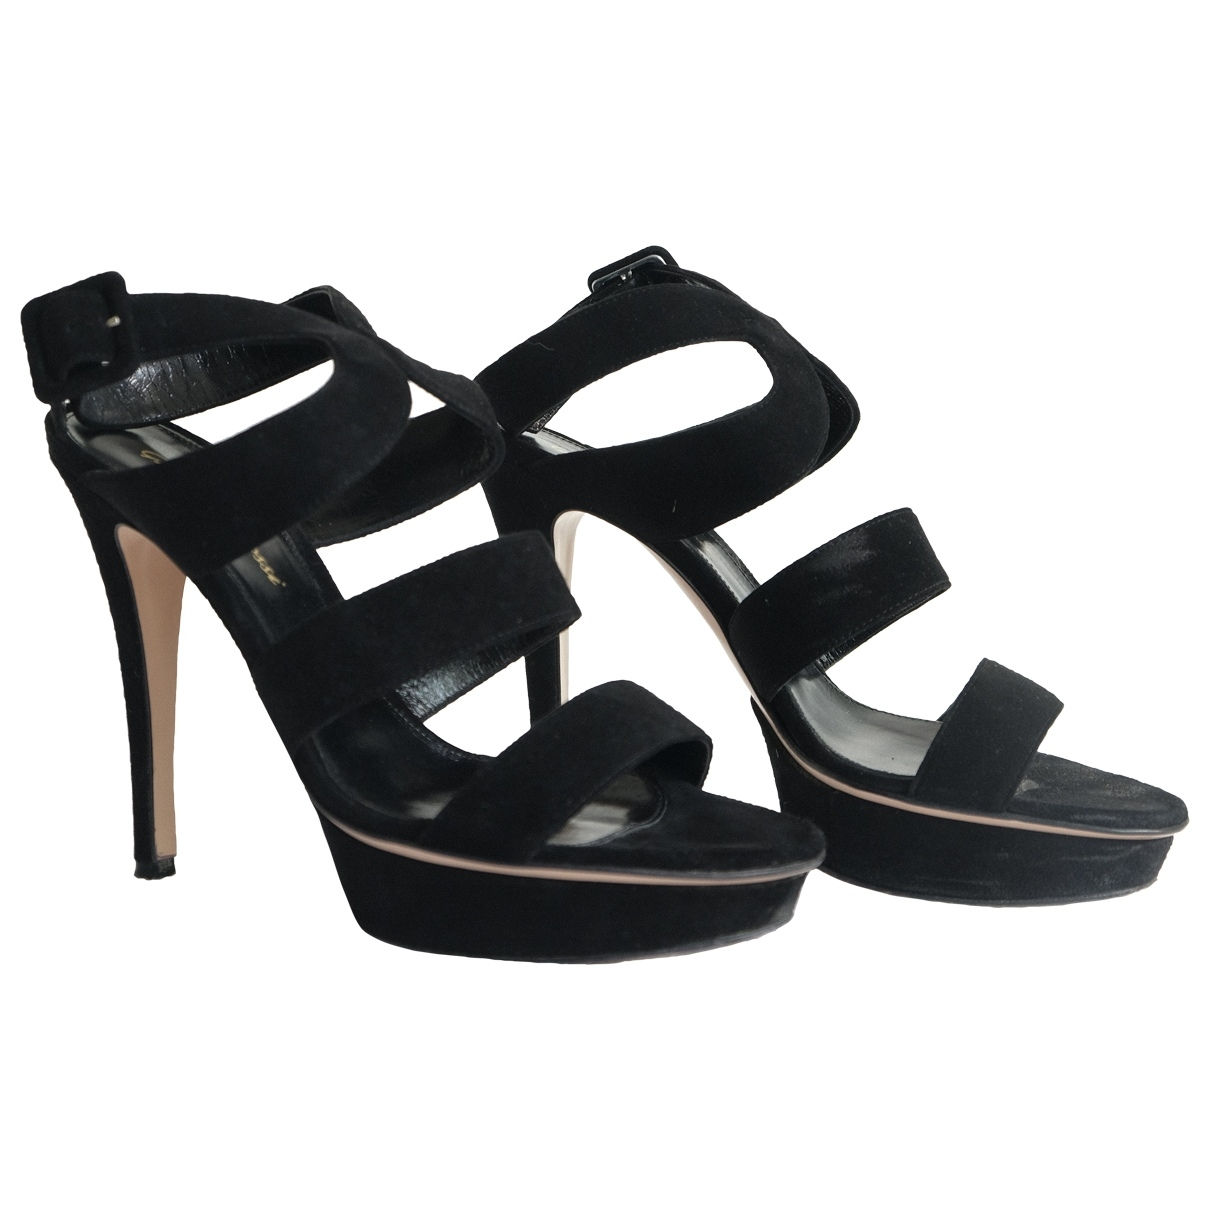 Gianvito Rossi \N Black Suede Sandals for Women 37.5 EU